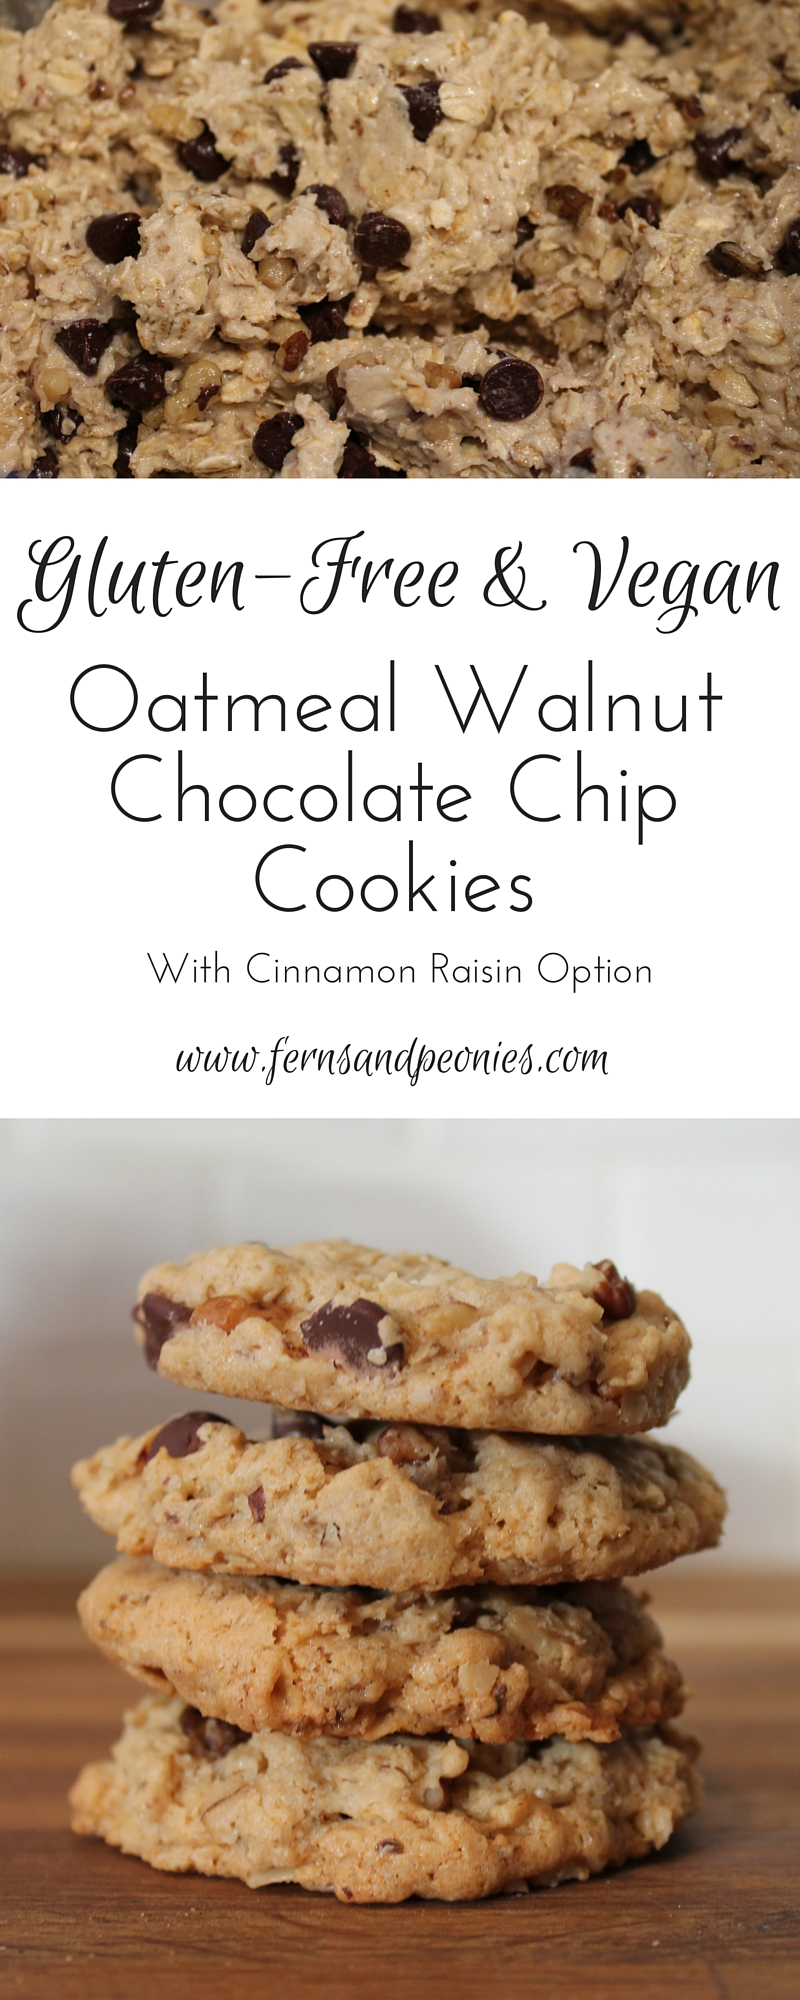 Oatmeal Walnut Chocolate Chip Cookies (GF,V) with Cinnamon Raisin Option. By www.fernsandpeonies.com